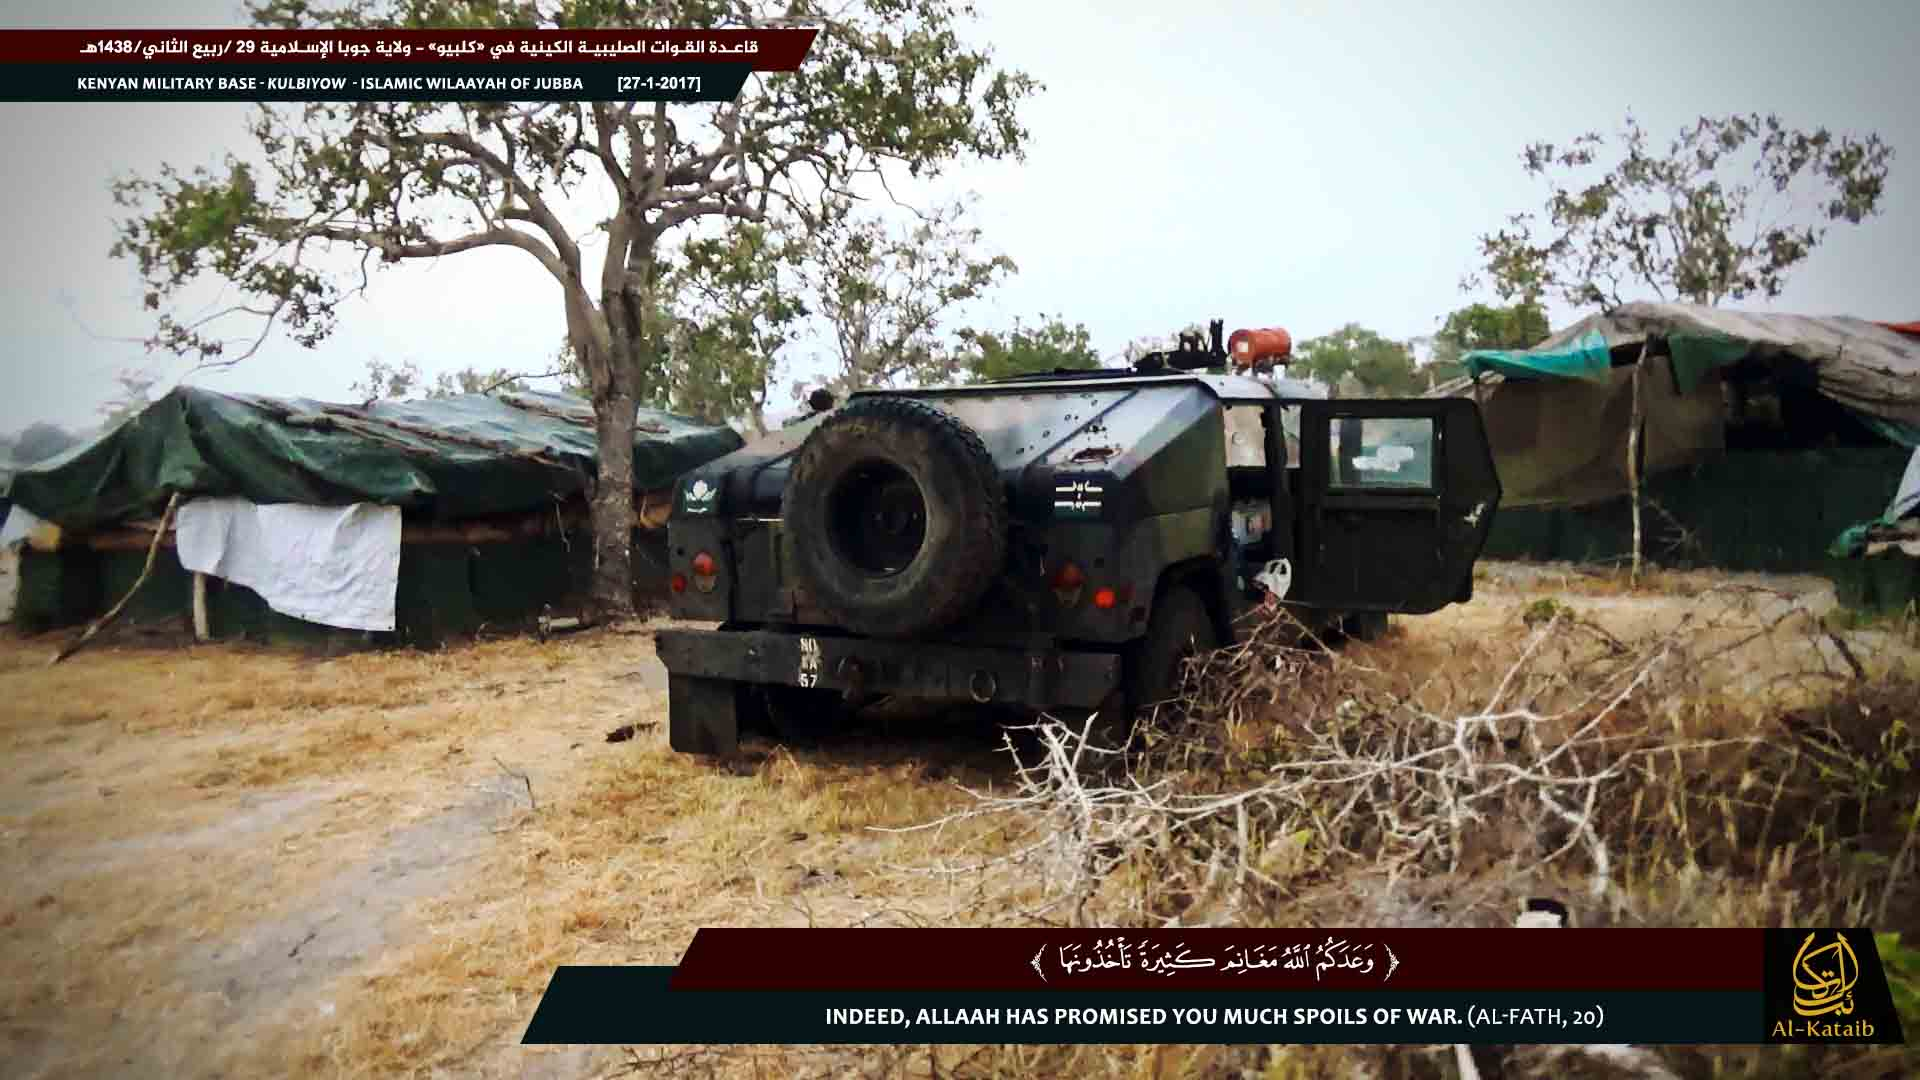 Al Shabaab Militants Capture Kenyan Military Camp in Somalia: 72 Kenyan Soldiers Killed (Photos)